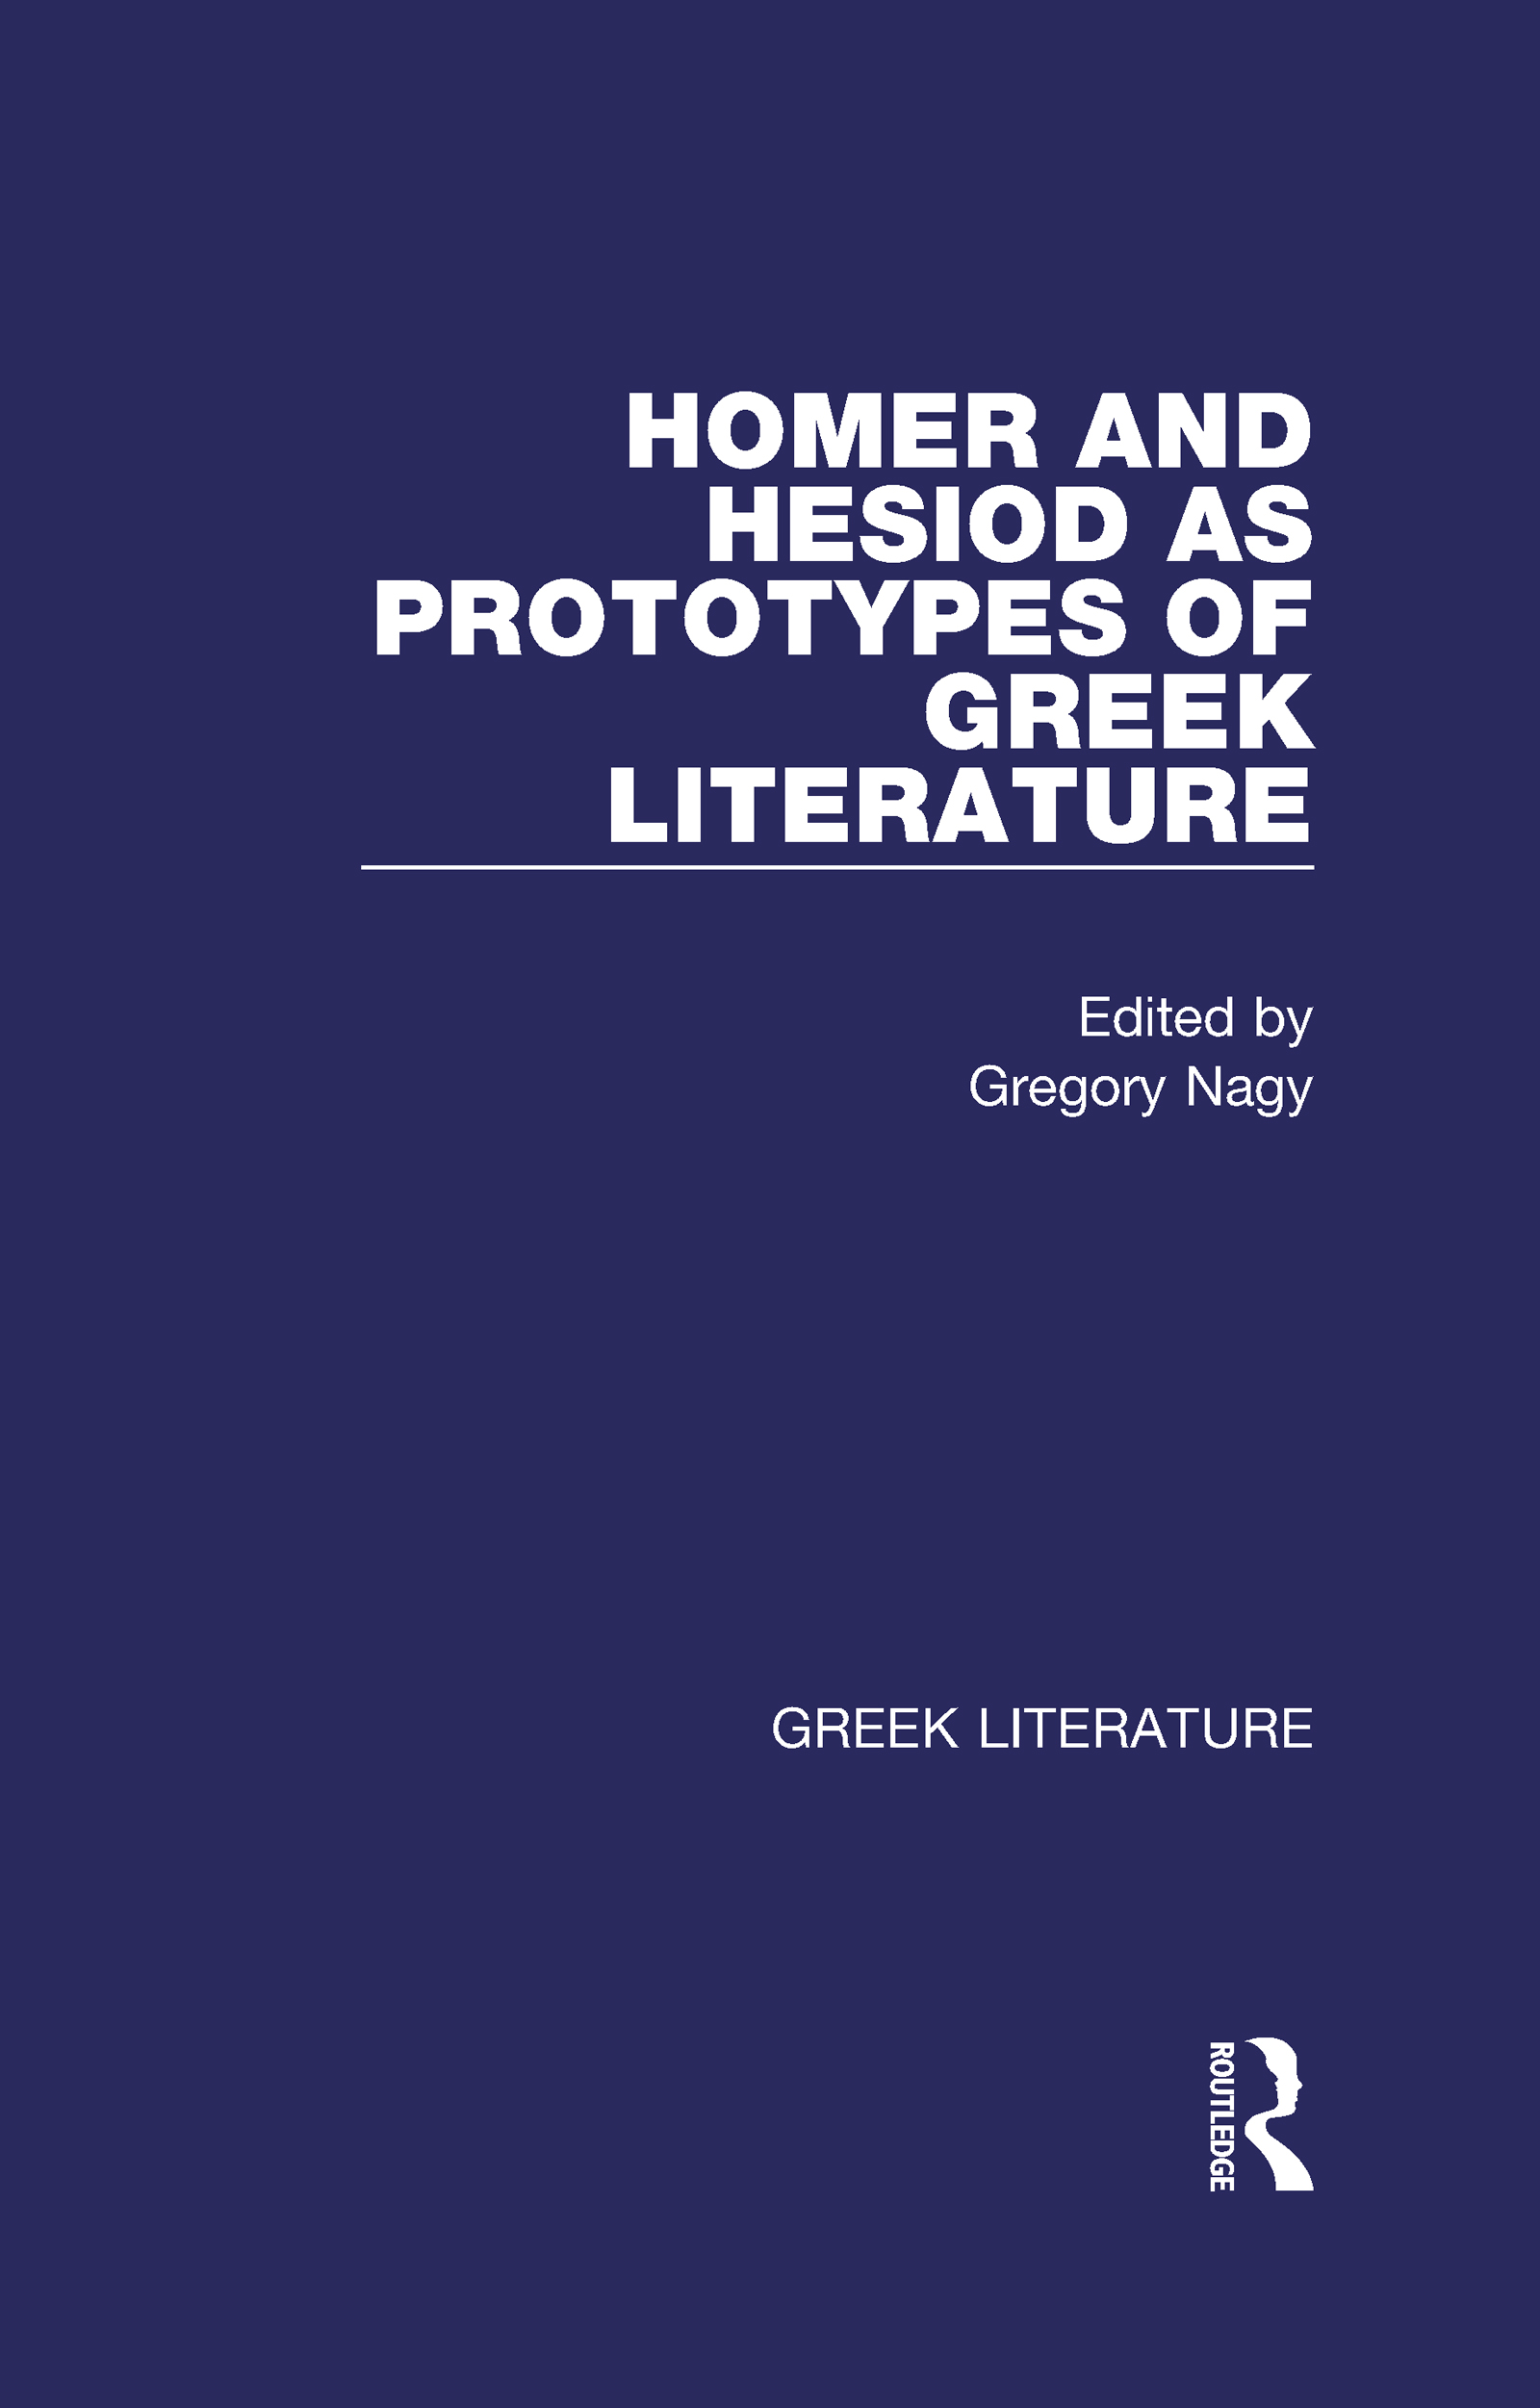 Homer and Hesiod as Prototypes of Greek Literature